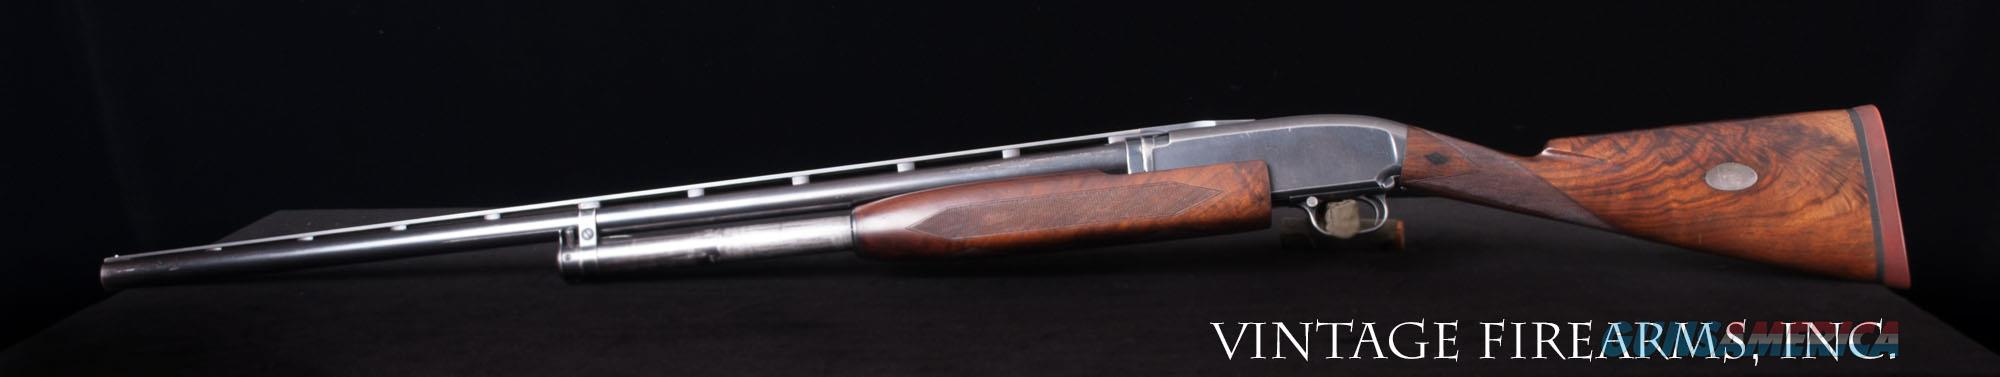 Winchester Model 12 – BLACK DIAMOND TRAP, 12 GAUGE DUCK BILL VENT RIB; FACTORY ORIGINAL   Guns > Shotguns > Winchester Shotguns - Modern > Pump Action > Trap/Skeet